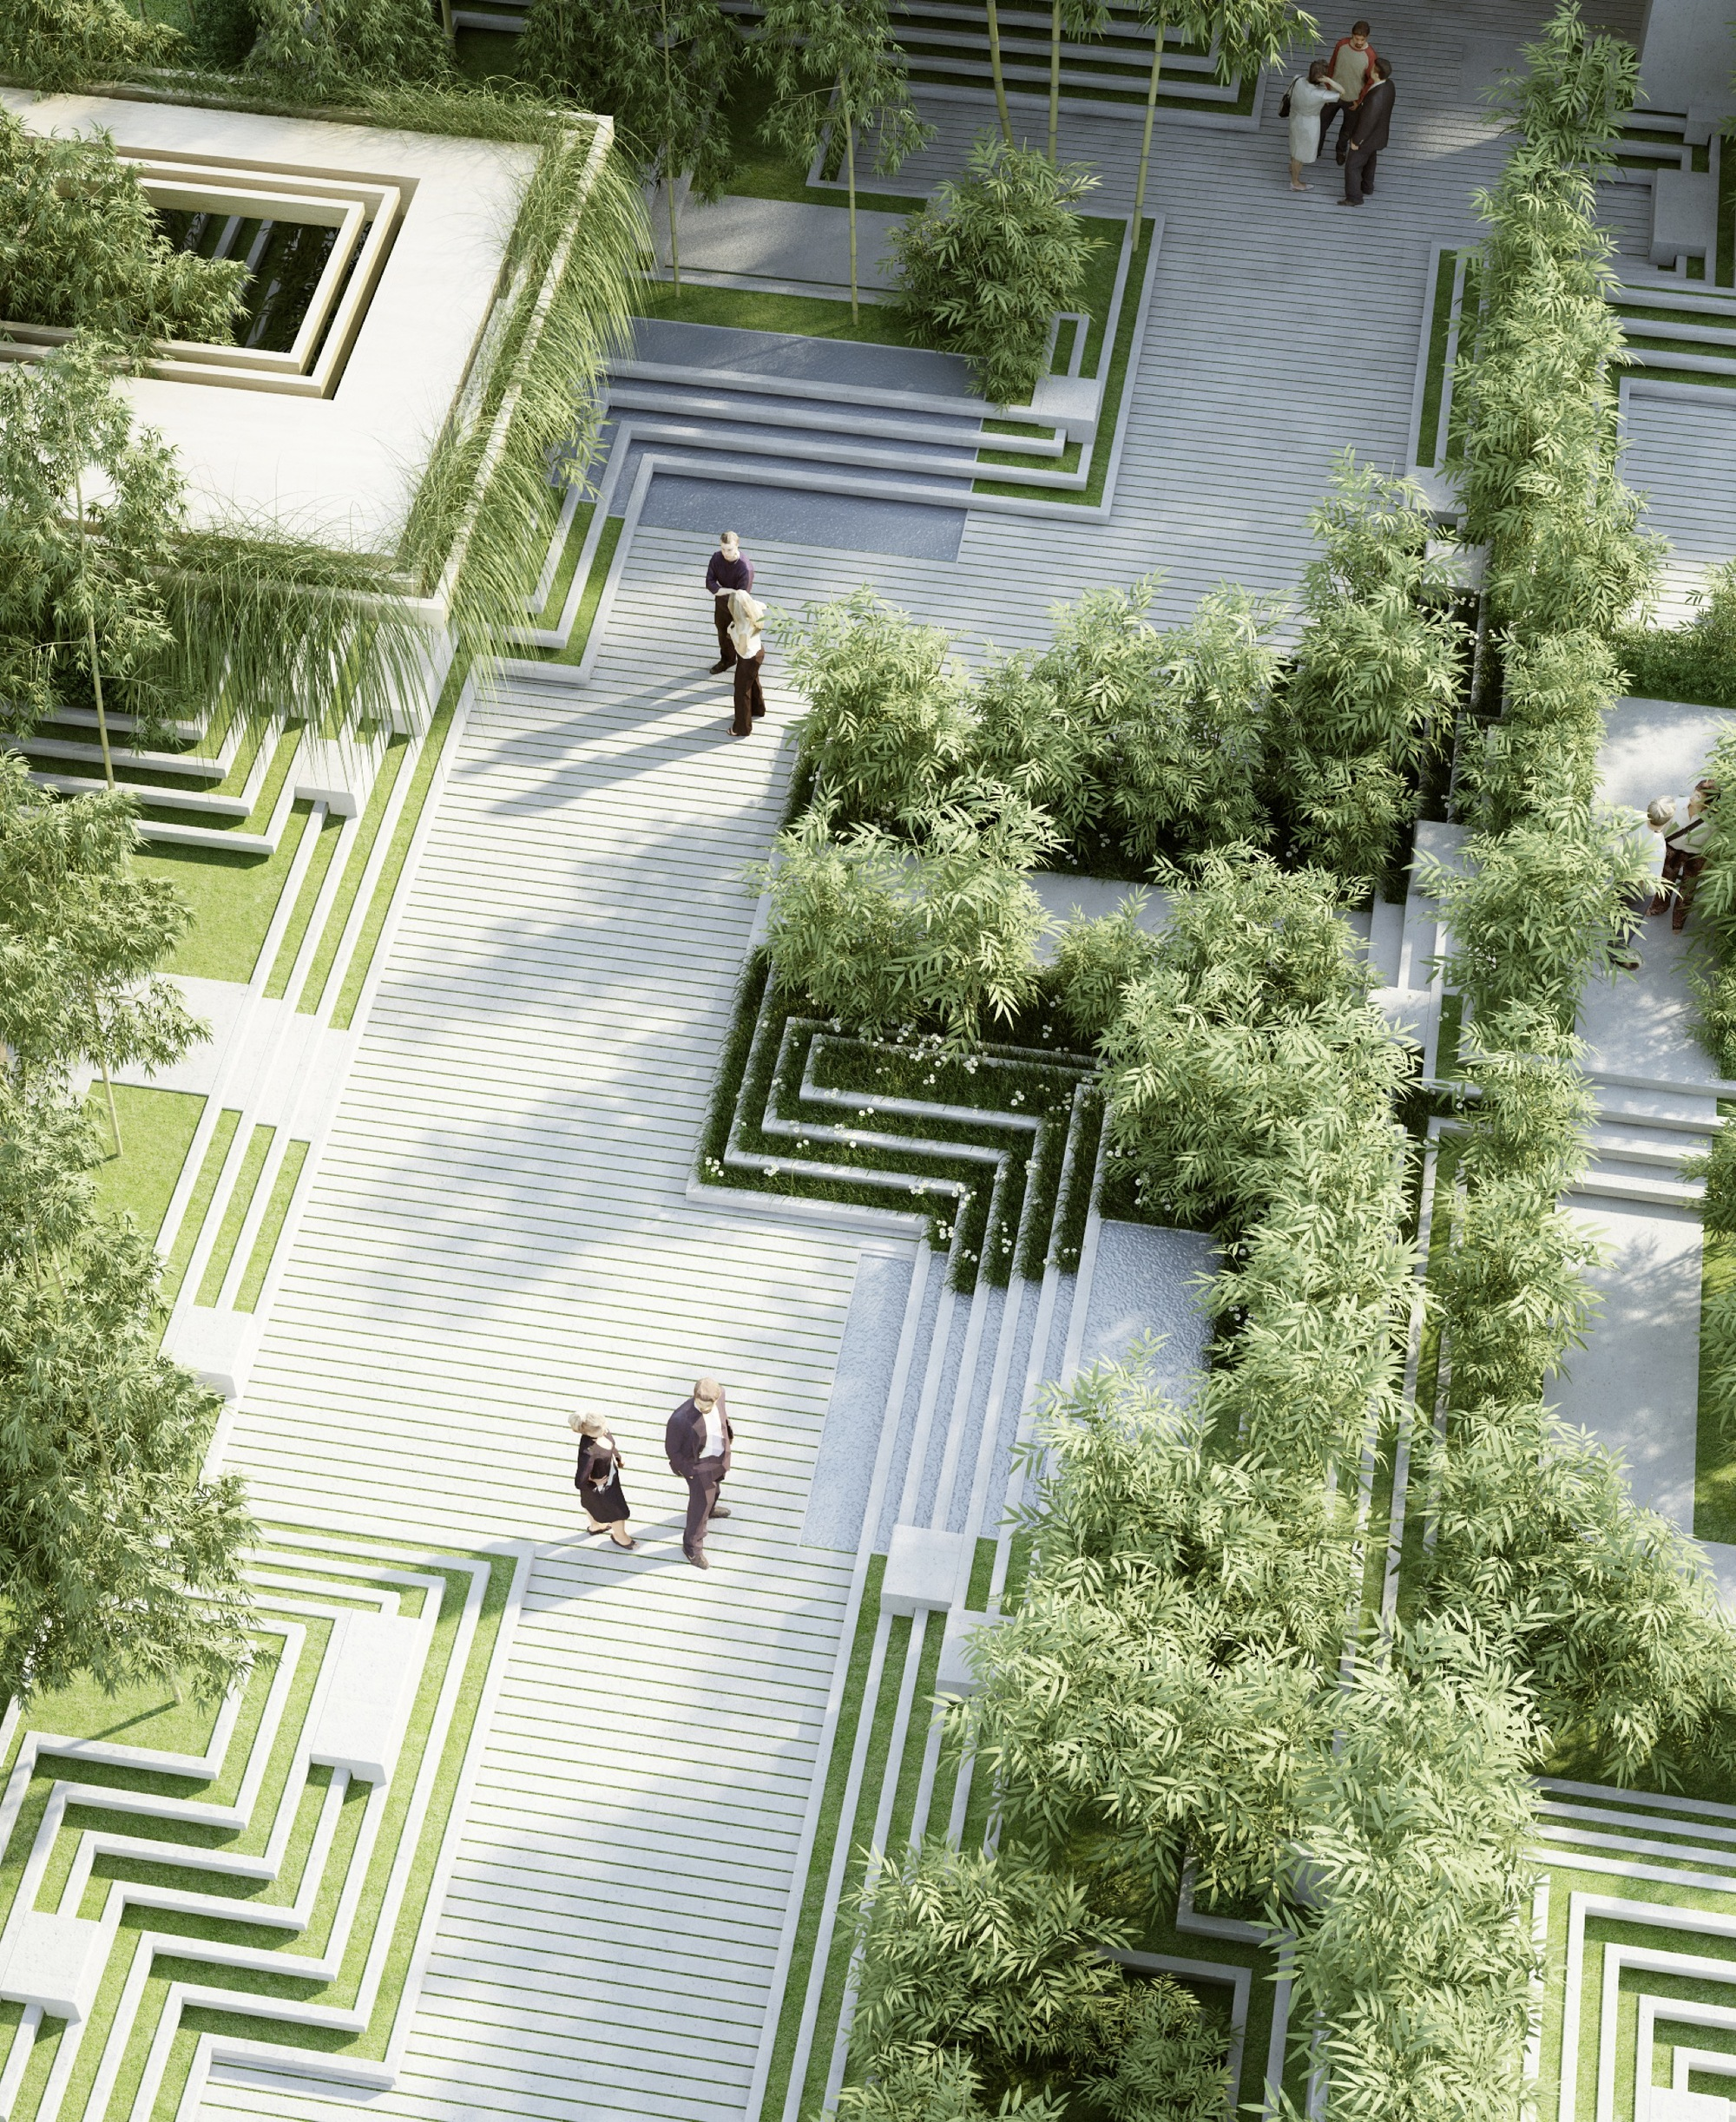 A New Landscape By Penda Is Inspired By Indian Stepwells And Water Mazes | ArchDaily